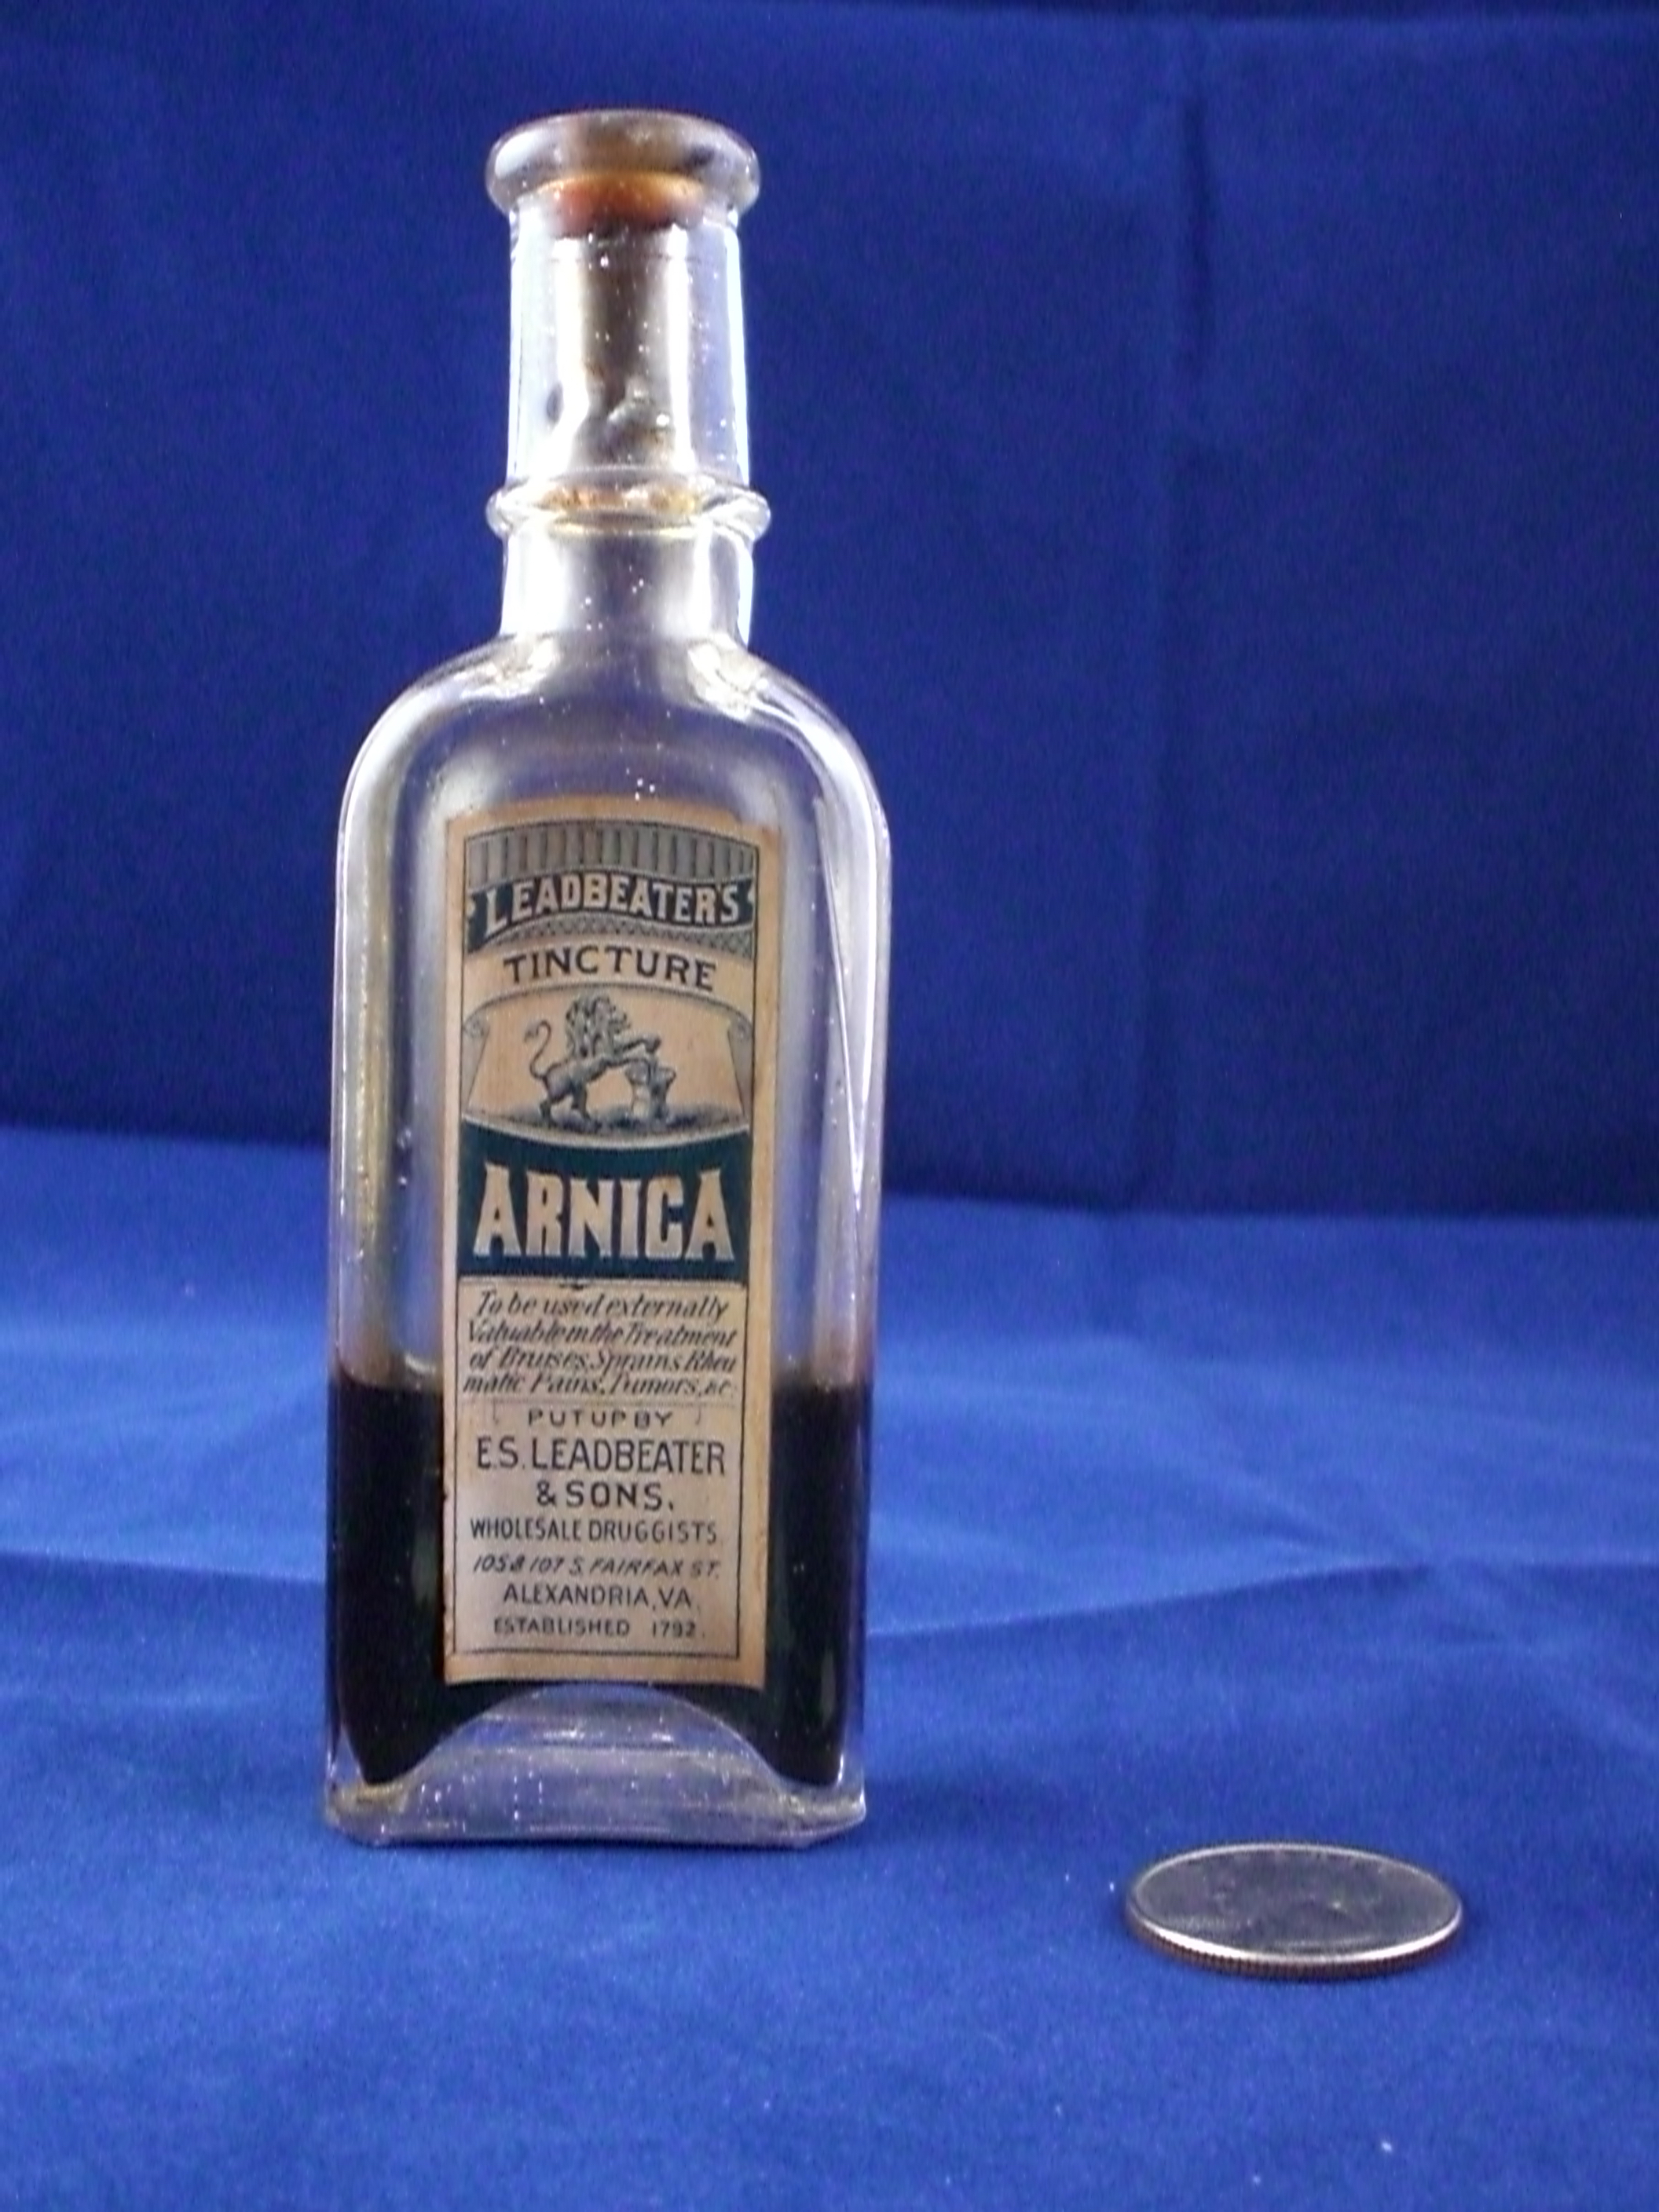 Arnica Stabler Leadbeater apothecary